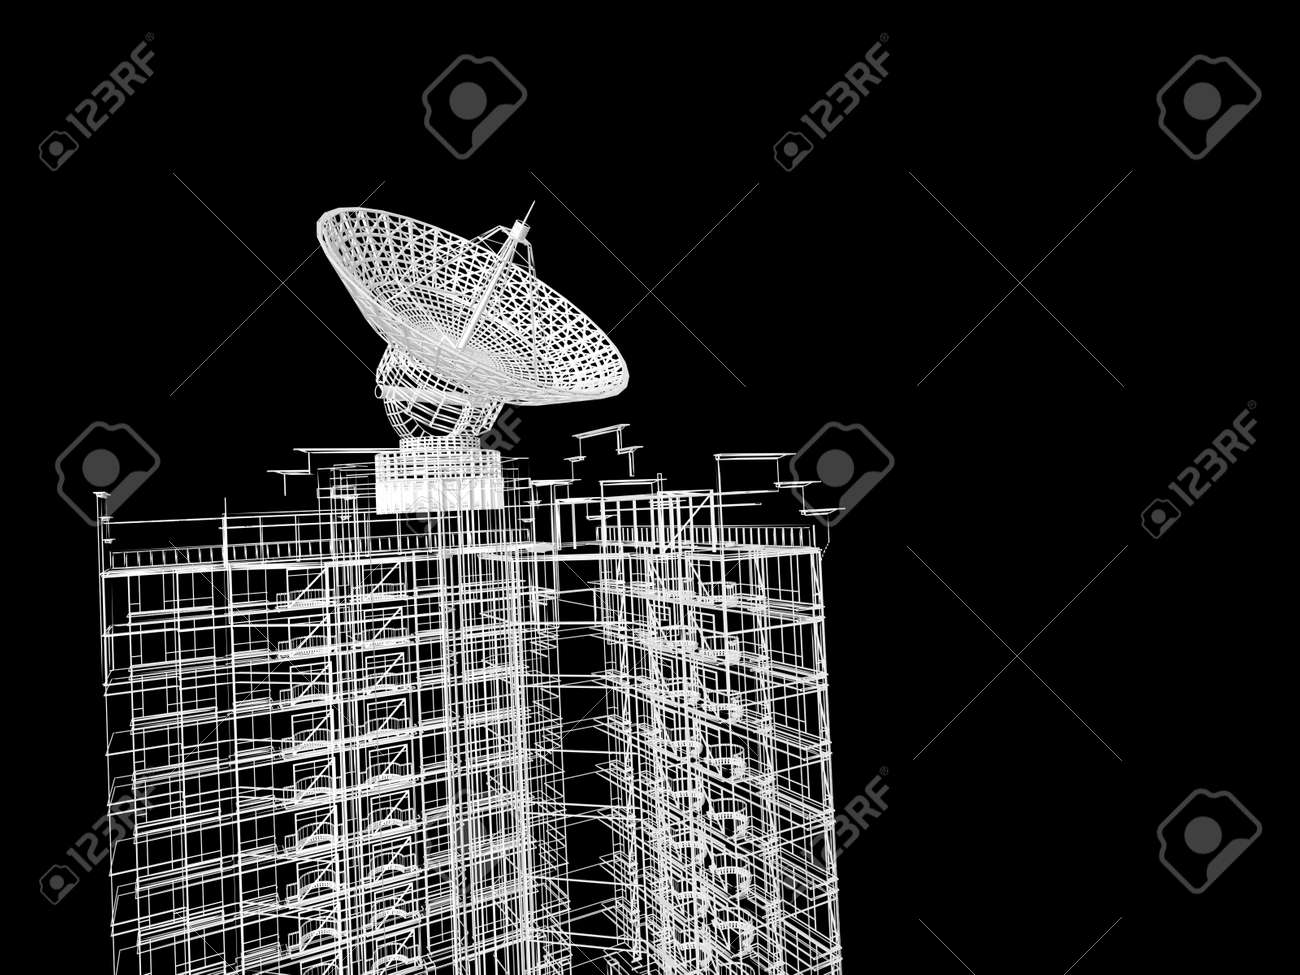 Abstract architectural 3D construction Stock Photo - 13611807